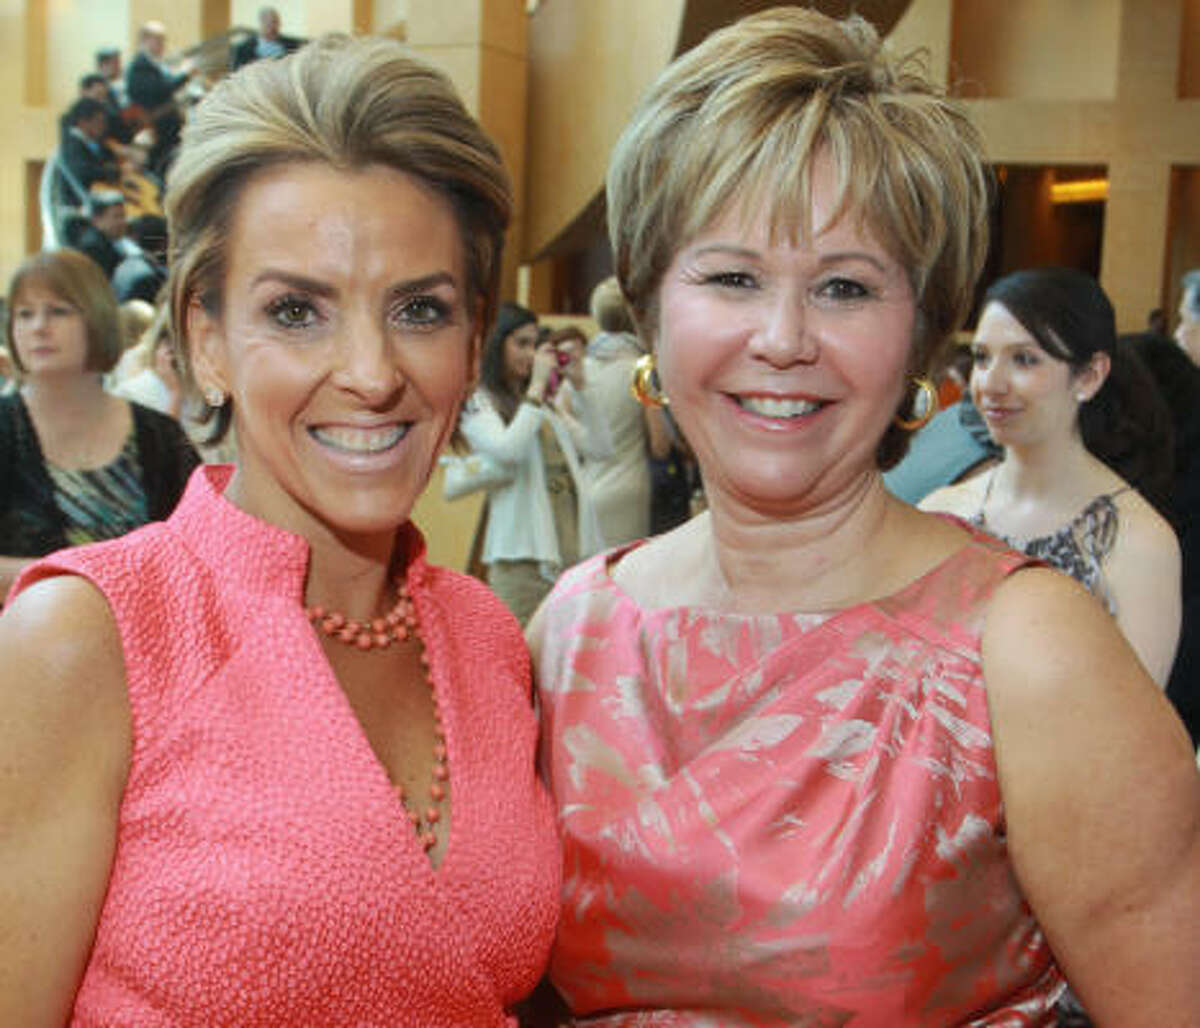 Mary Tere Perusquia, president of the Latin Women's Initiative, and Cyndy Garza Roberts, the luncheon chair.